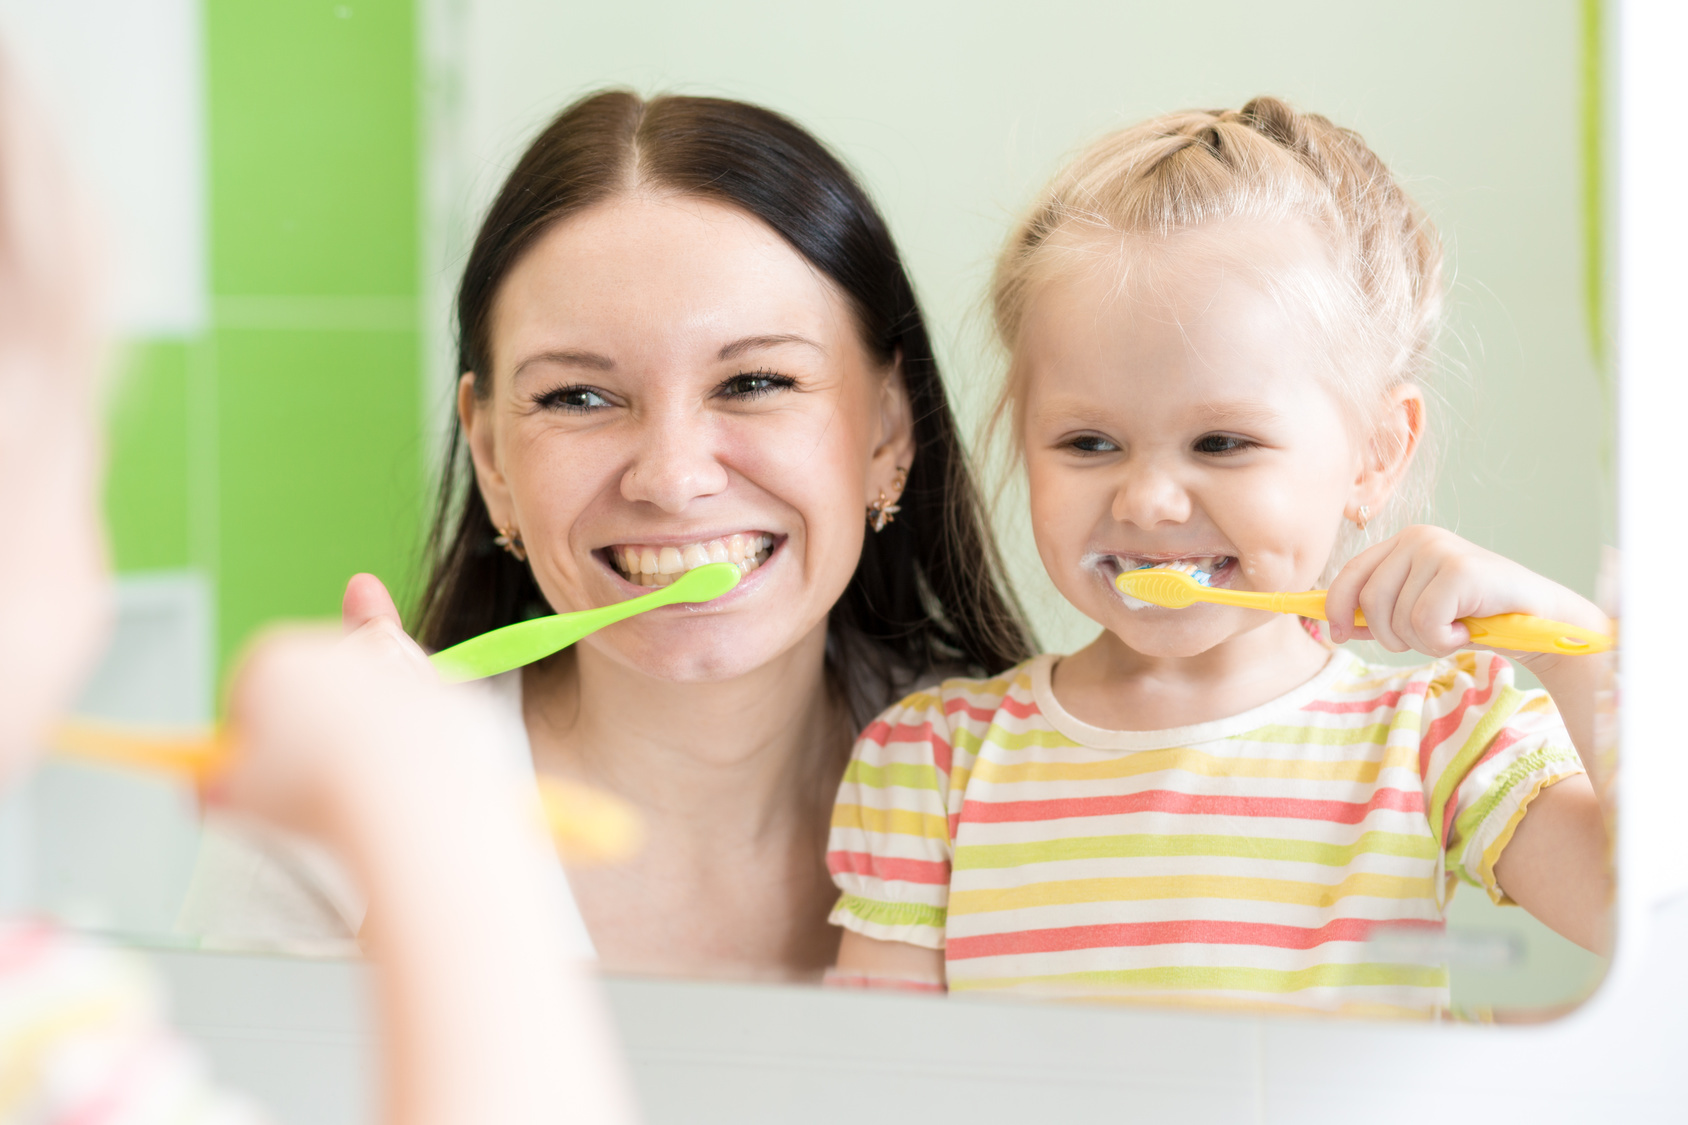 Brushing-up on your oral health